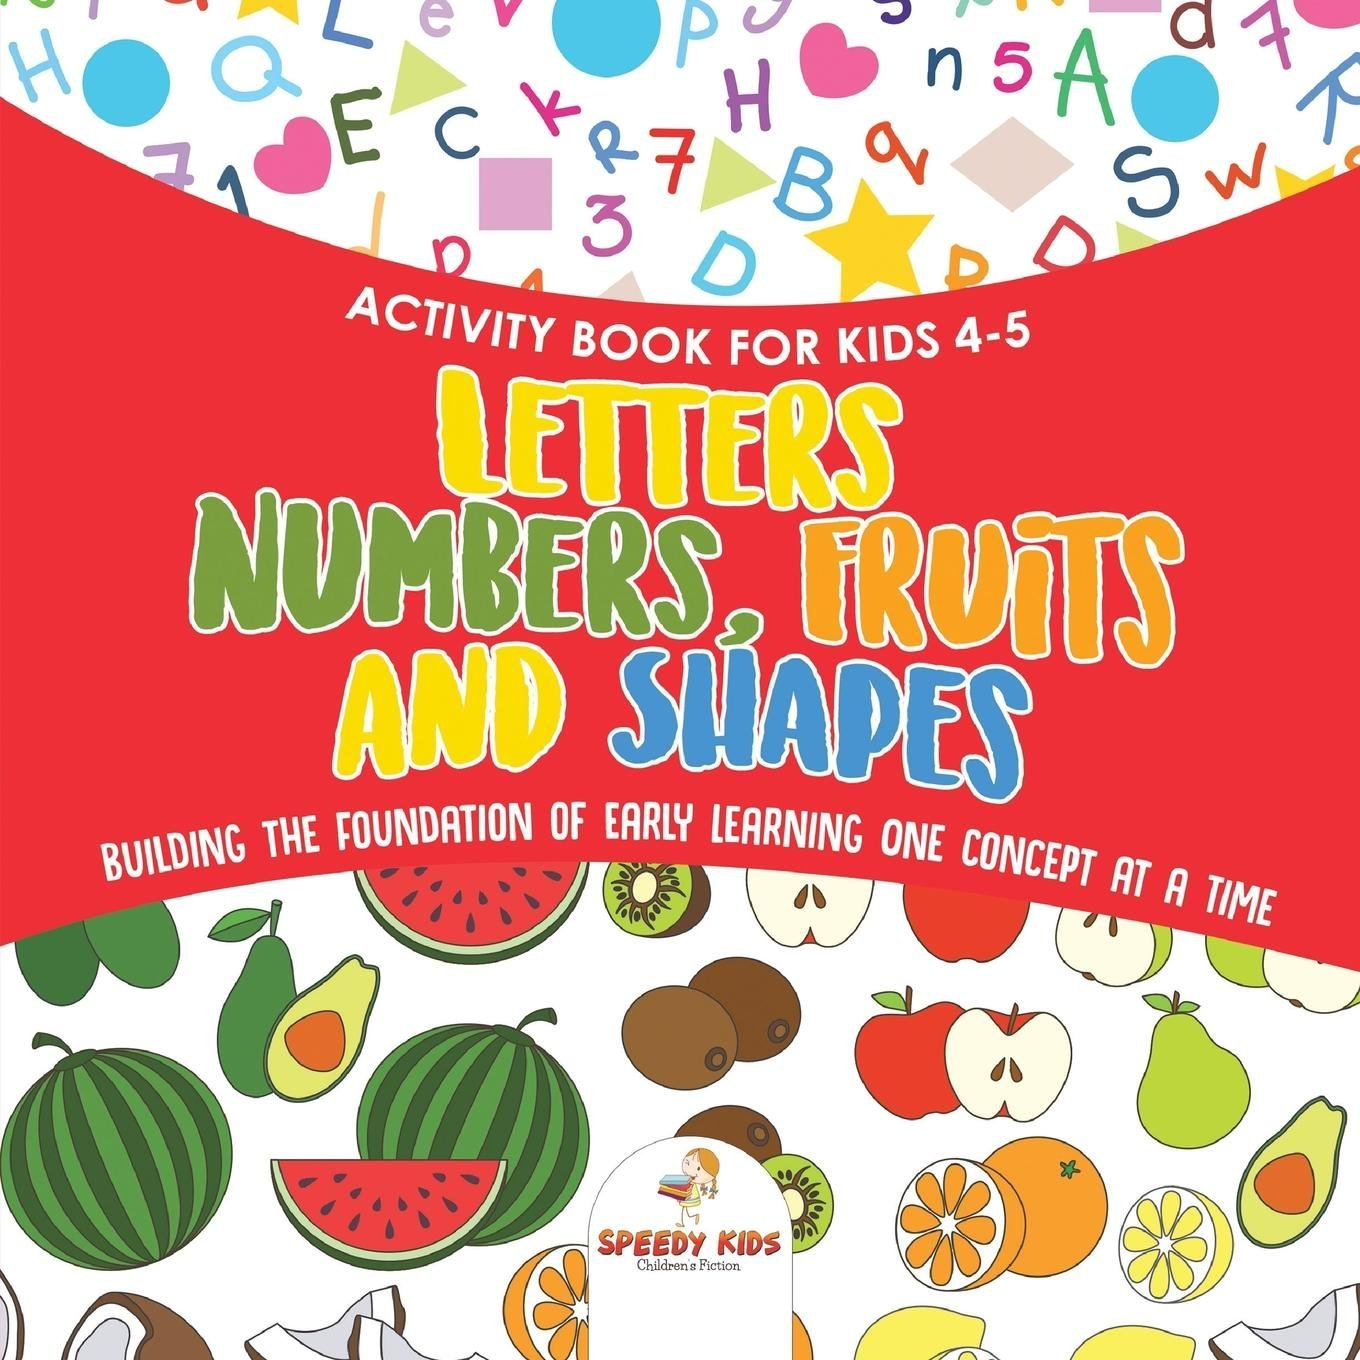 Activity Book for Kids 4-5. Letters, Numbers, Fruits and Shapes. Building the Foundation of Early Learning One Concept at a Time. Includes Coloring and Connect the Dots Exercises pdf epub